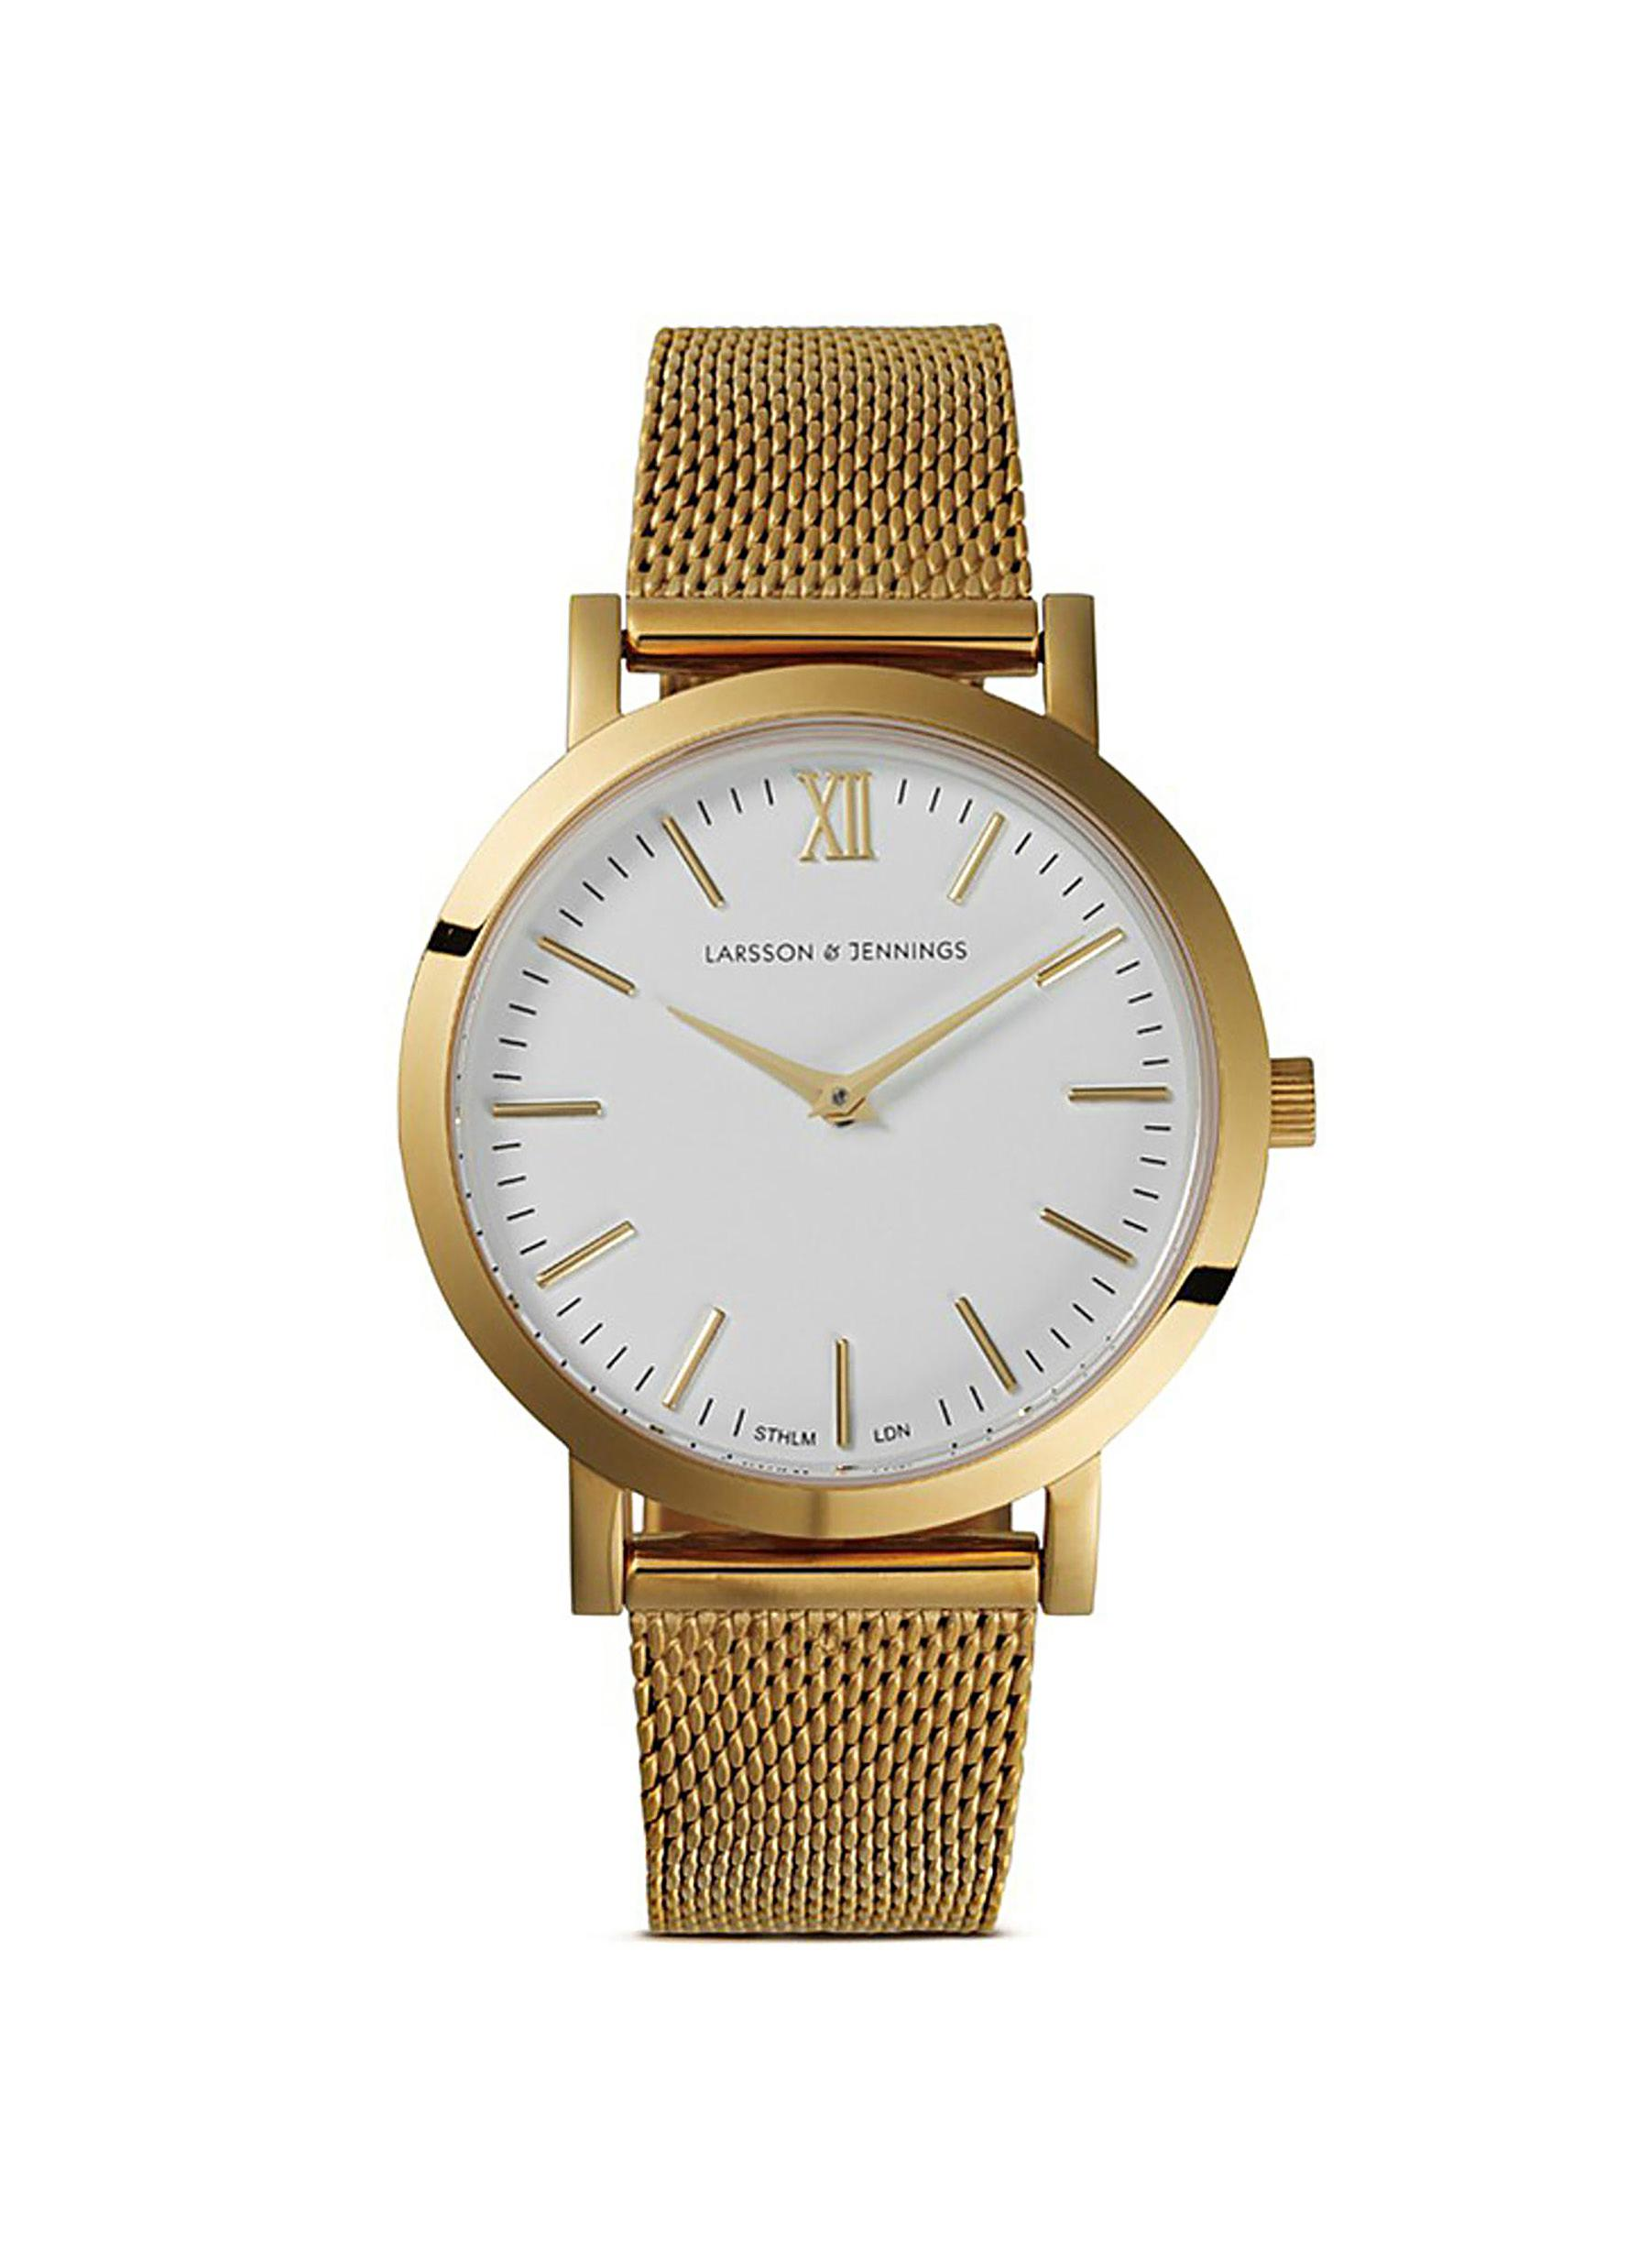 Lugano 33mm watch by Larsson & Jennings